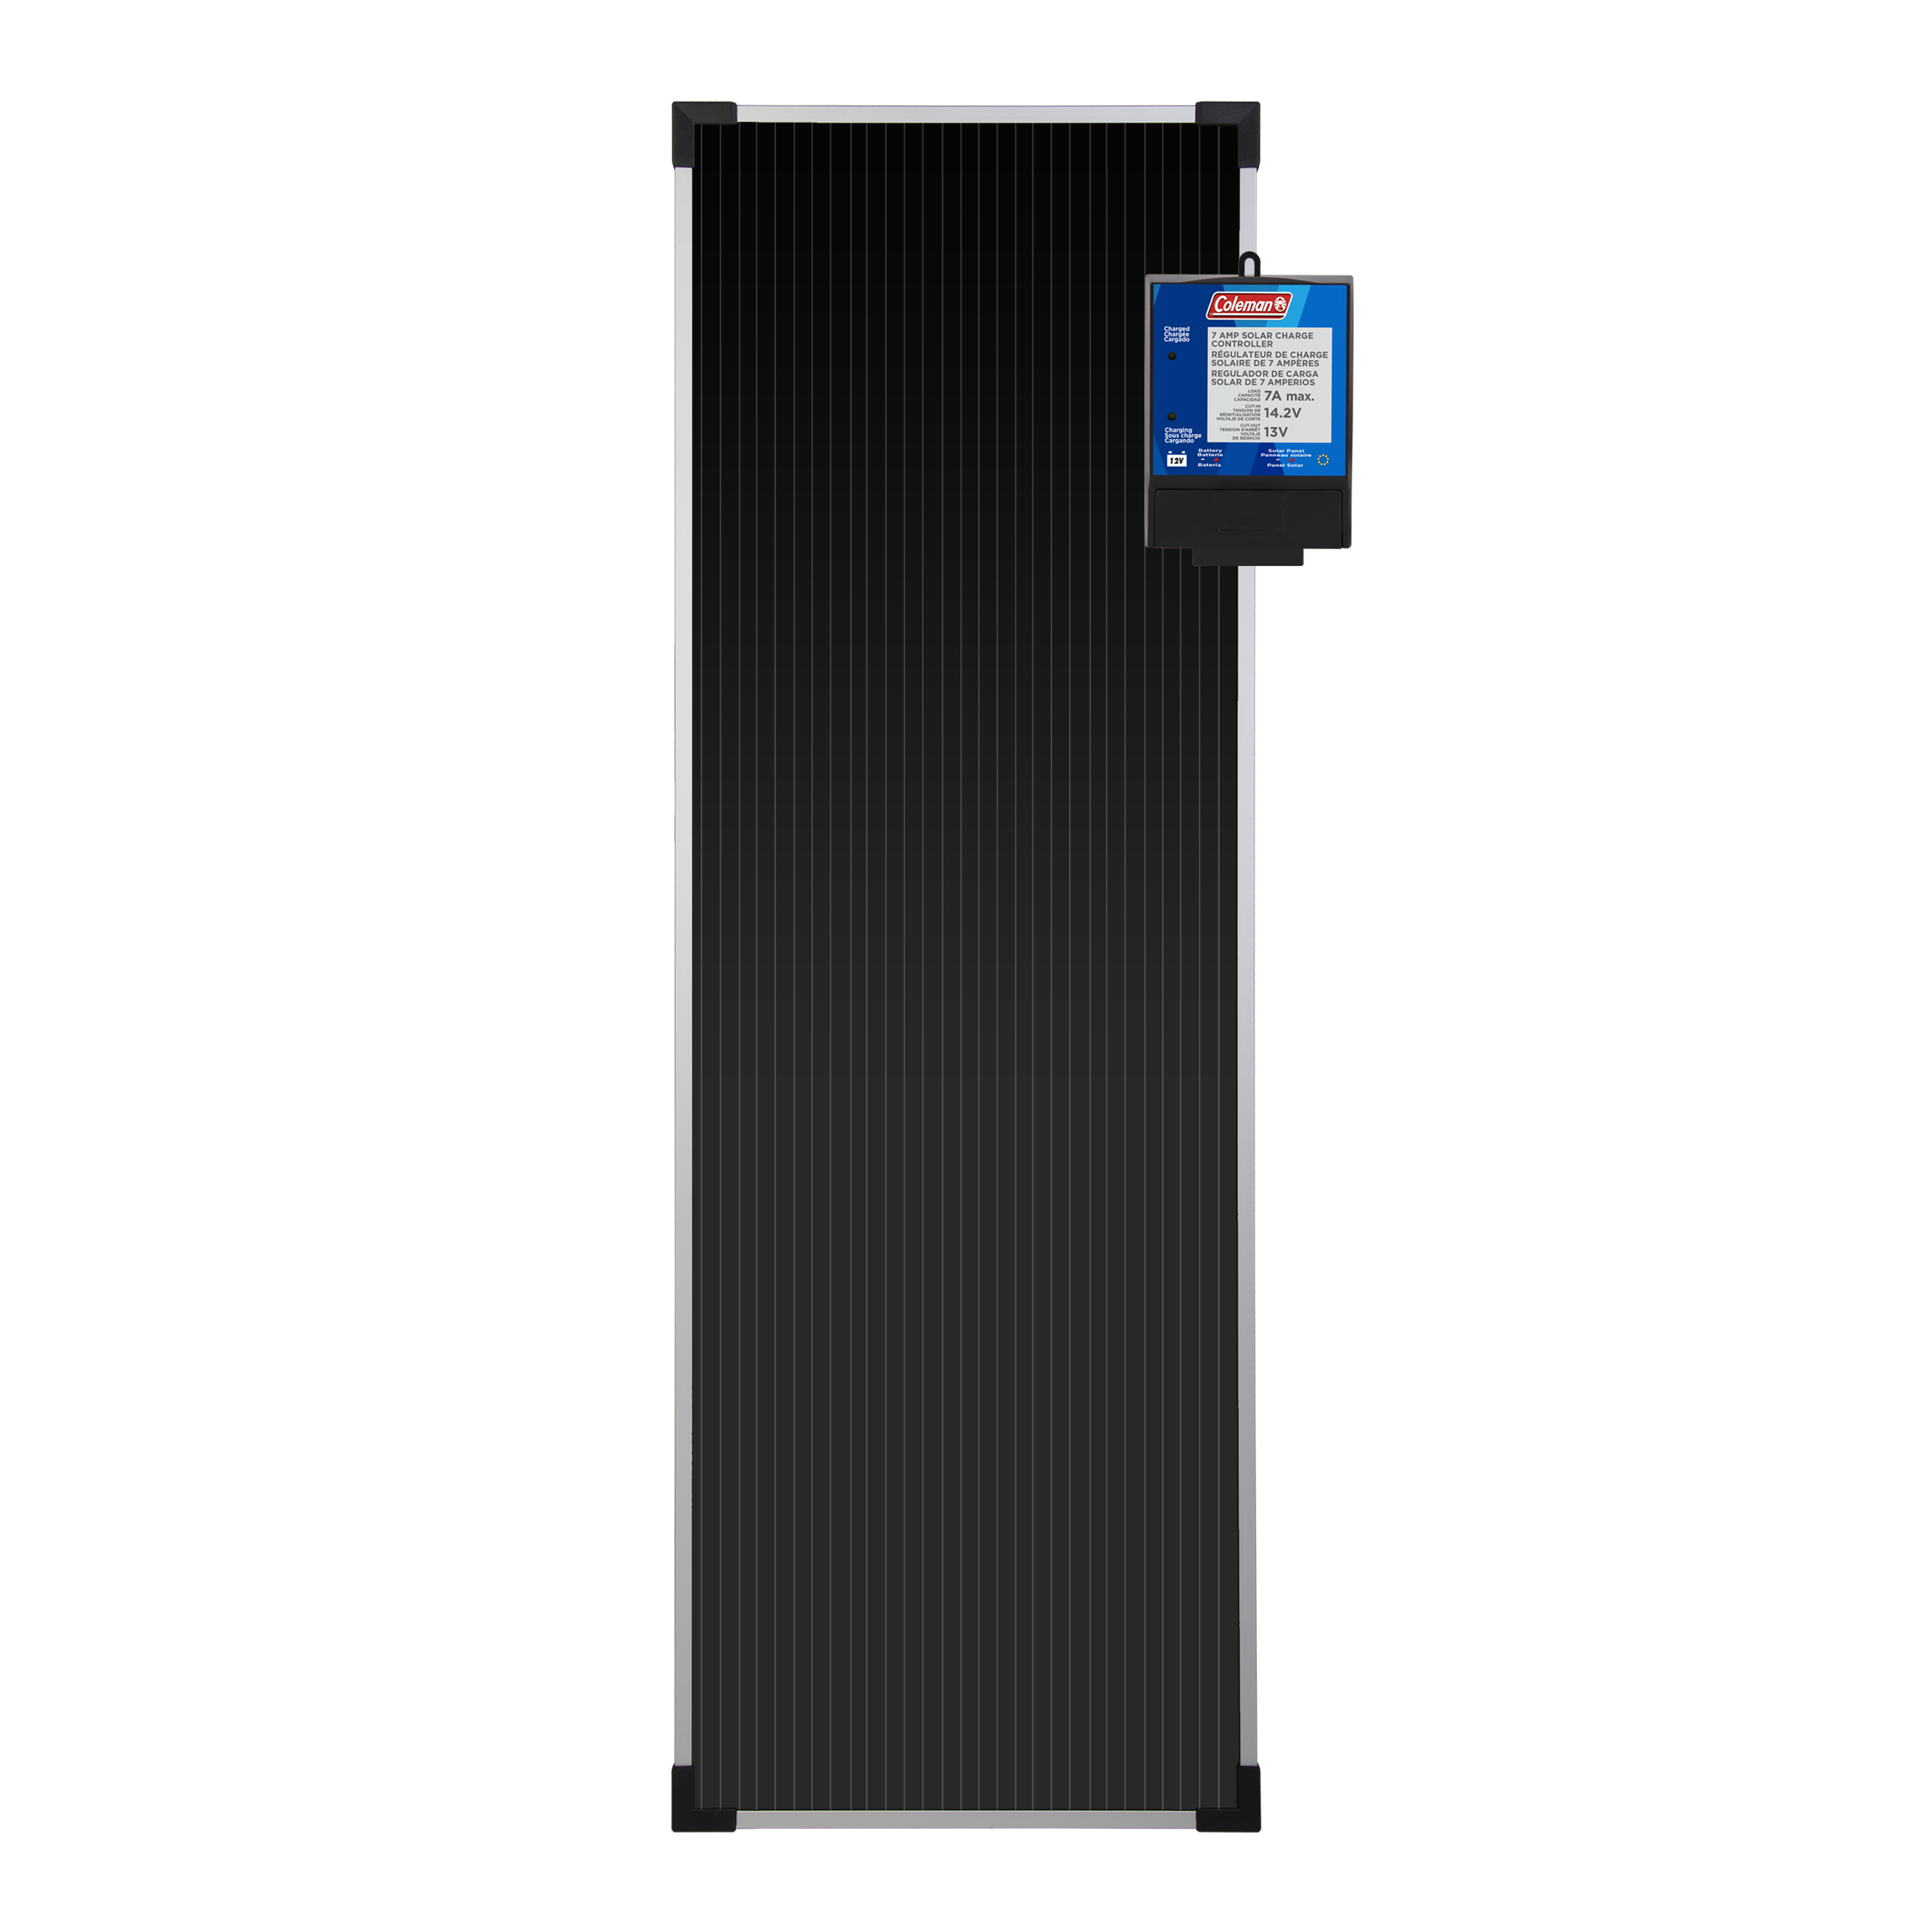 18 Watt 12 Volt Solar Battery Charger Kit Sunforce Products Inc Wiring Two 12v Batteries Parallel